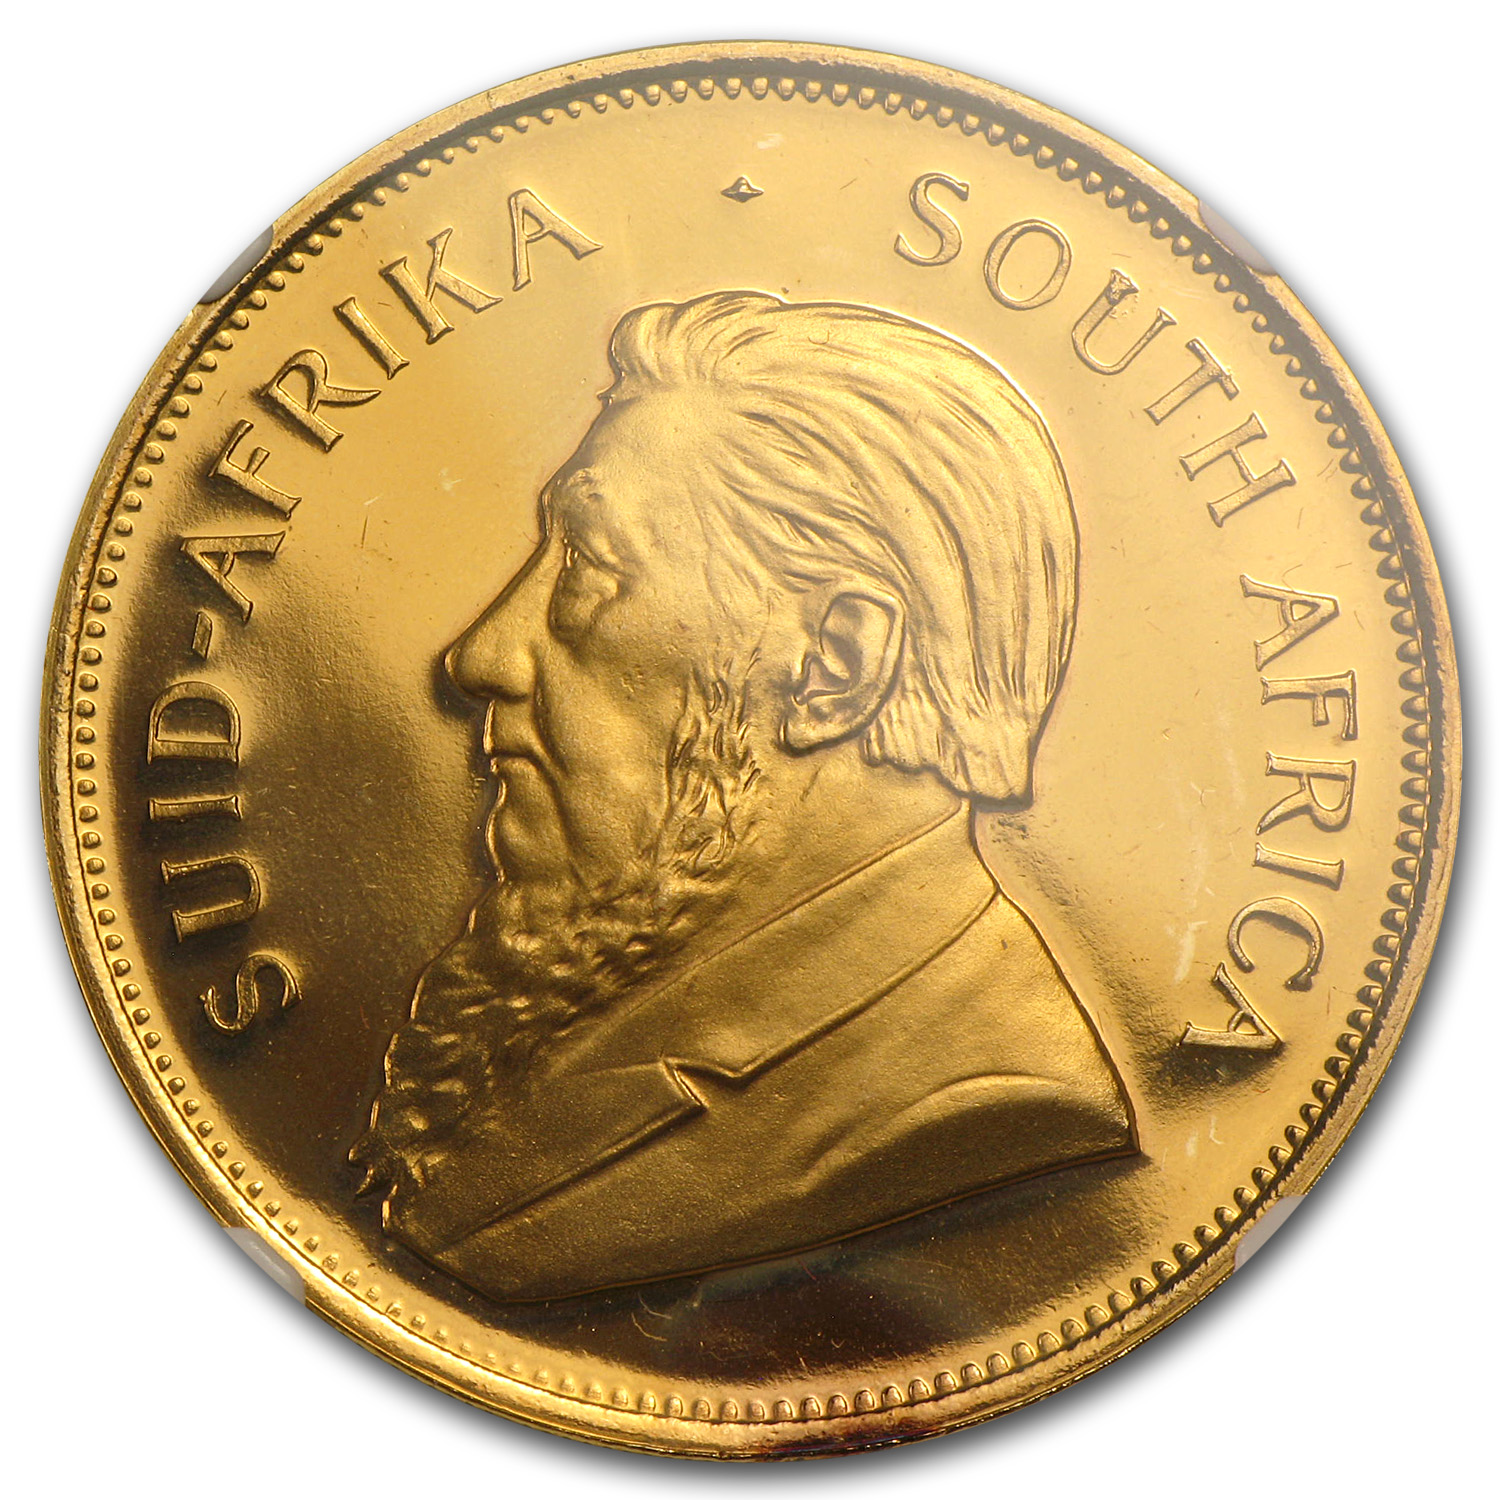 1989 South Africa 1 oz Gold Krugerrand PF-67 NGC (GRC)